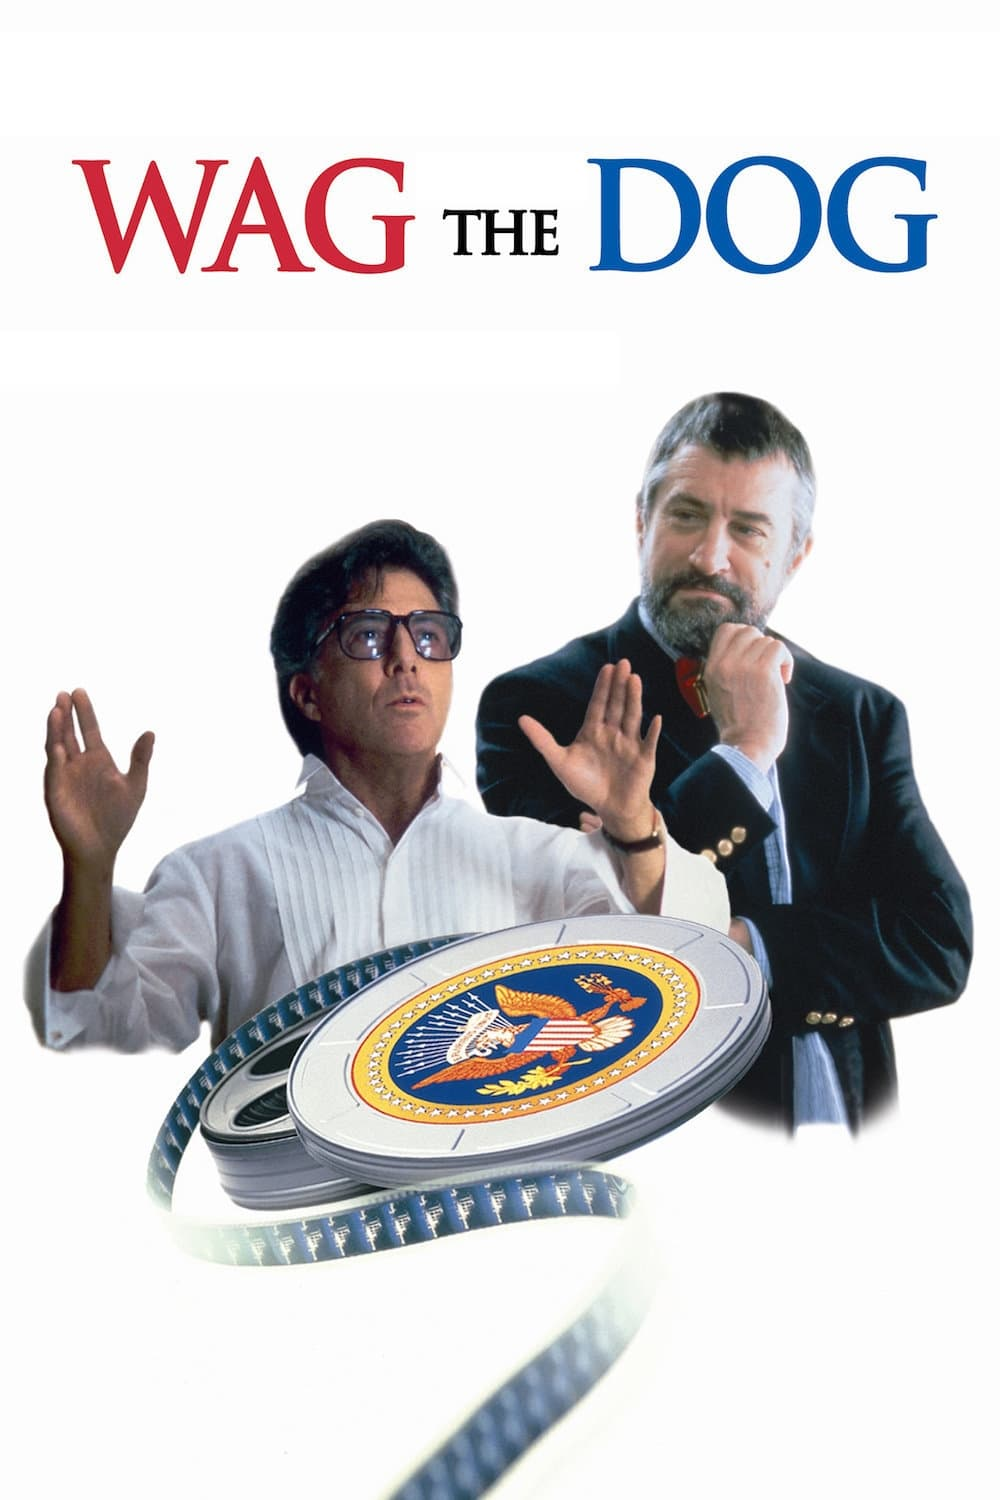 an analysis of the movie wag the dog wag the dog wag the dog is a movie that demonstrates the power that media has in our society and the ways it affects it through the movie we see how media manipulates people's thoughts, believes and the ways they interact.